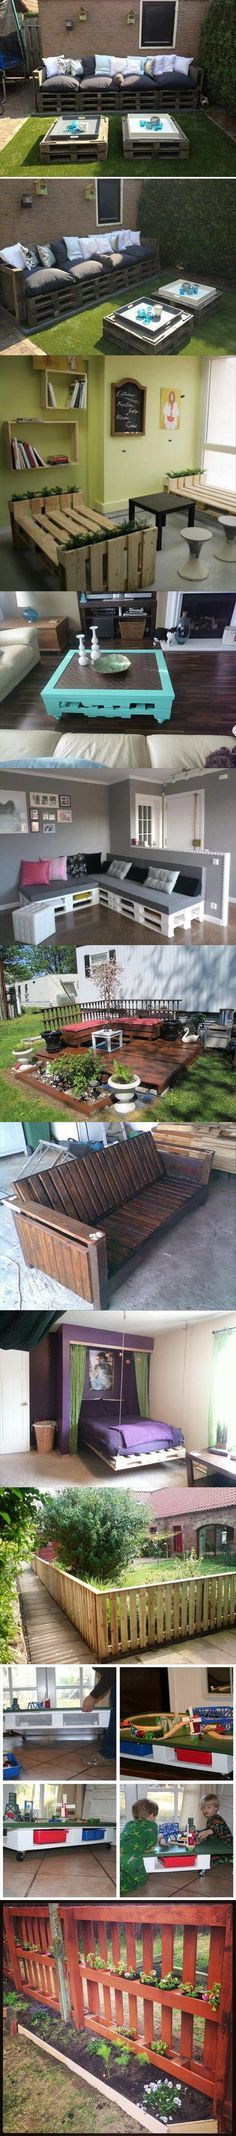 Amazing Uses For Old Pallets http://imgfave.com/view/4596639?utm_content=buffer27270&utm_medium=social&utm_source=pinterest.com&utm_campaign=buffer http://calgary.isgreen.ca/outdoor/green-spaces/i-see-trees-of-green/?utm_content=buffer0f3a0&utm_medium=social&utm_source=pinterest.com&utm_campaign=buffer